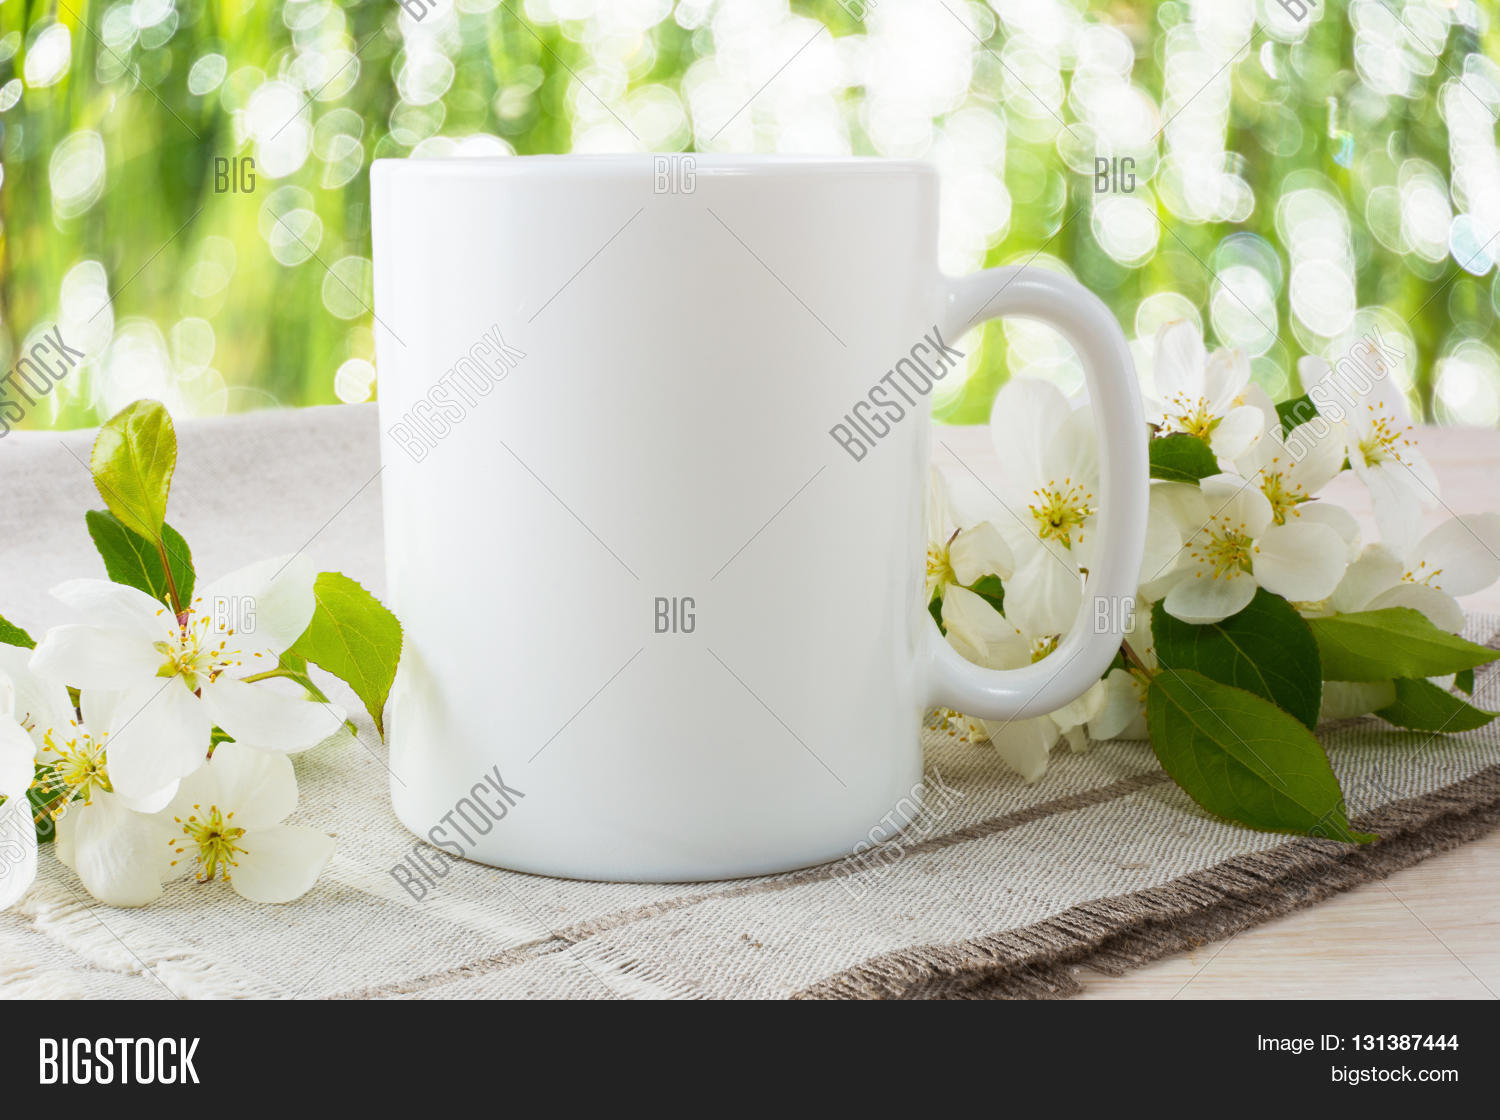 mug mockup apple image photo free trial bigstock